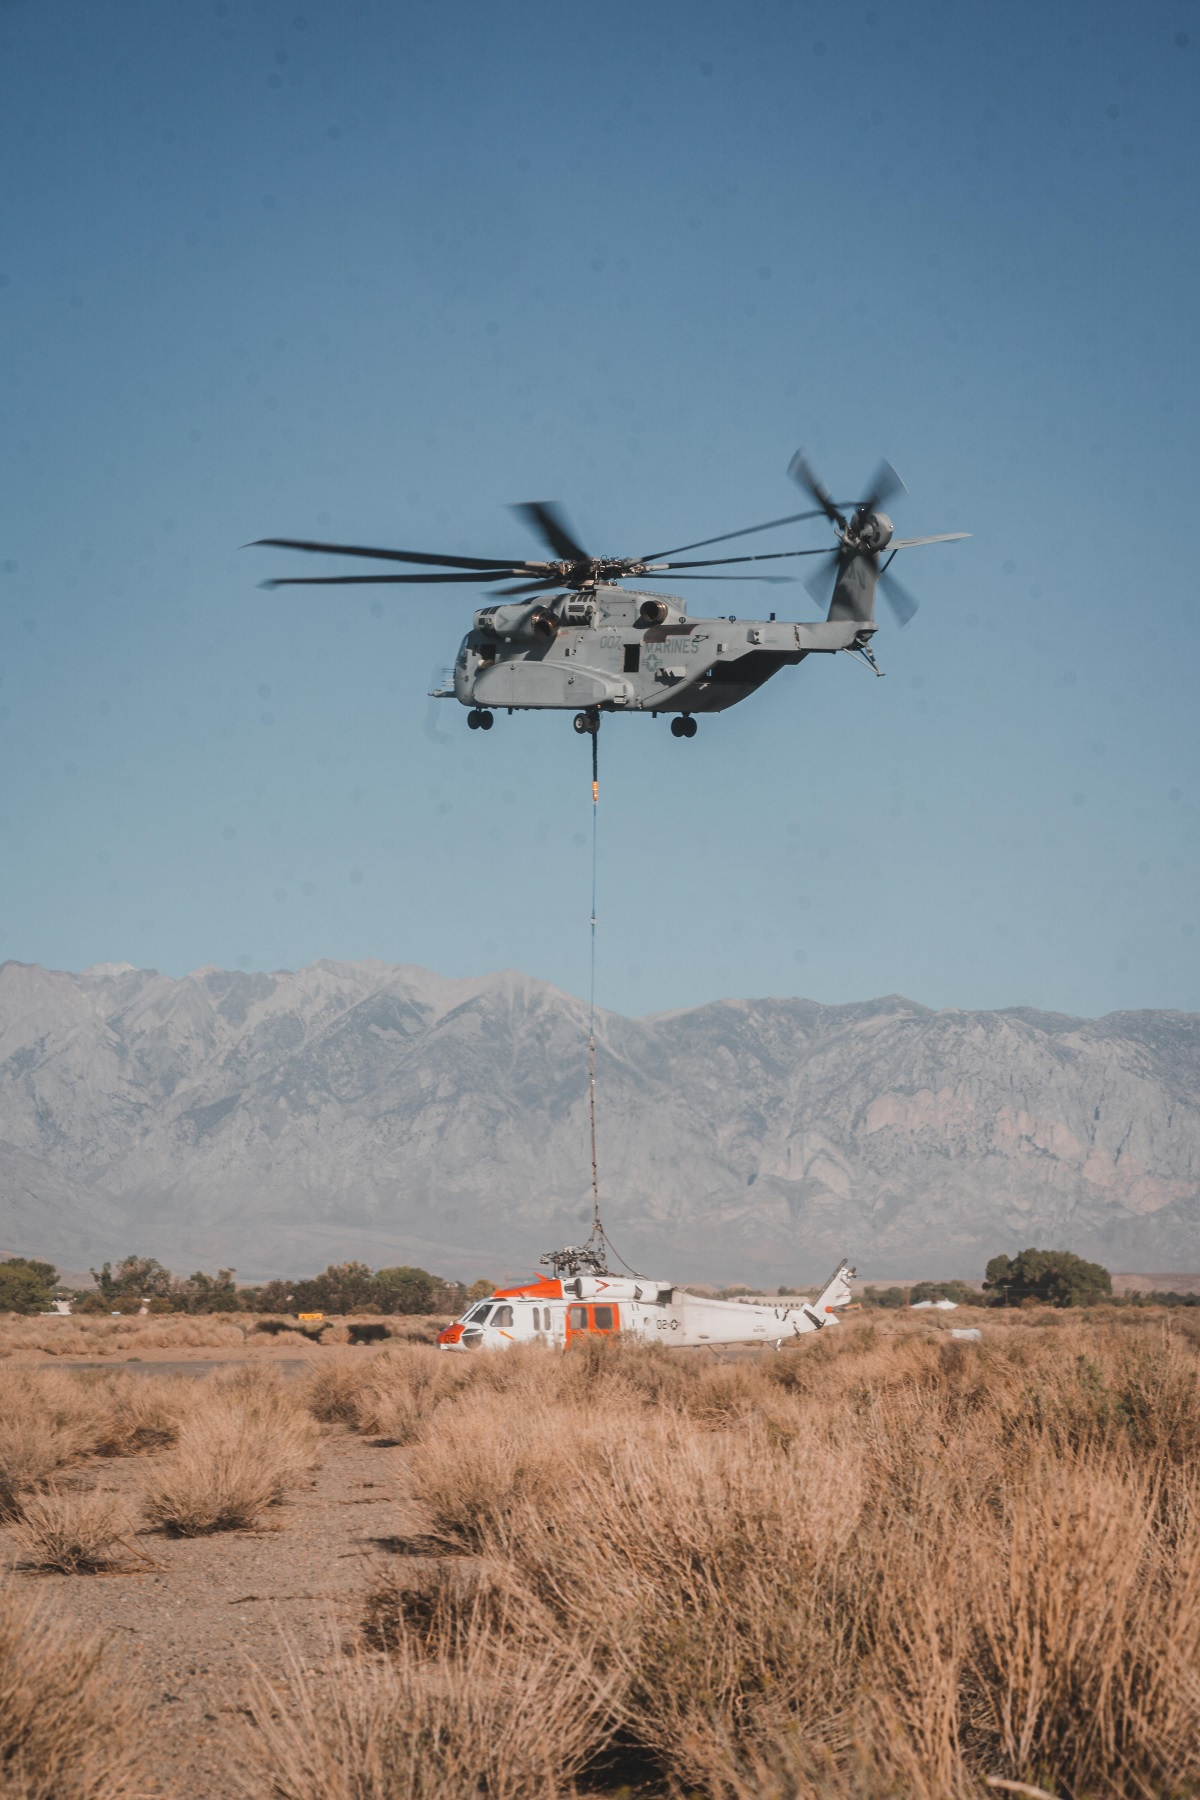 CH-53K King Stallion first fleet mission was a tough operation to lift a MH-60S Knighthawk at 12,000 ft